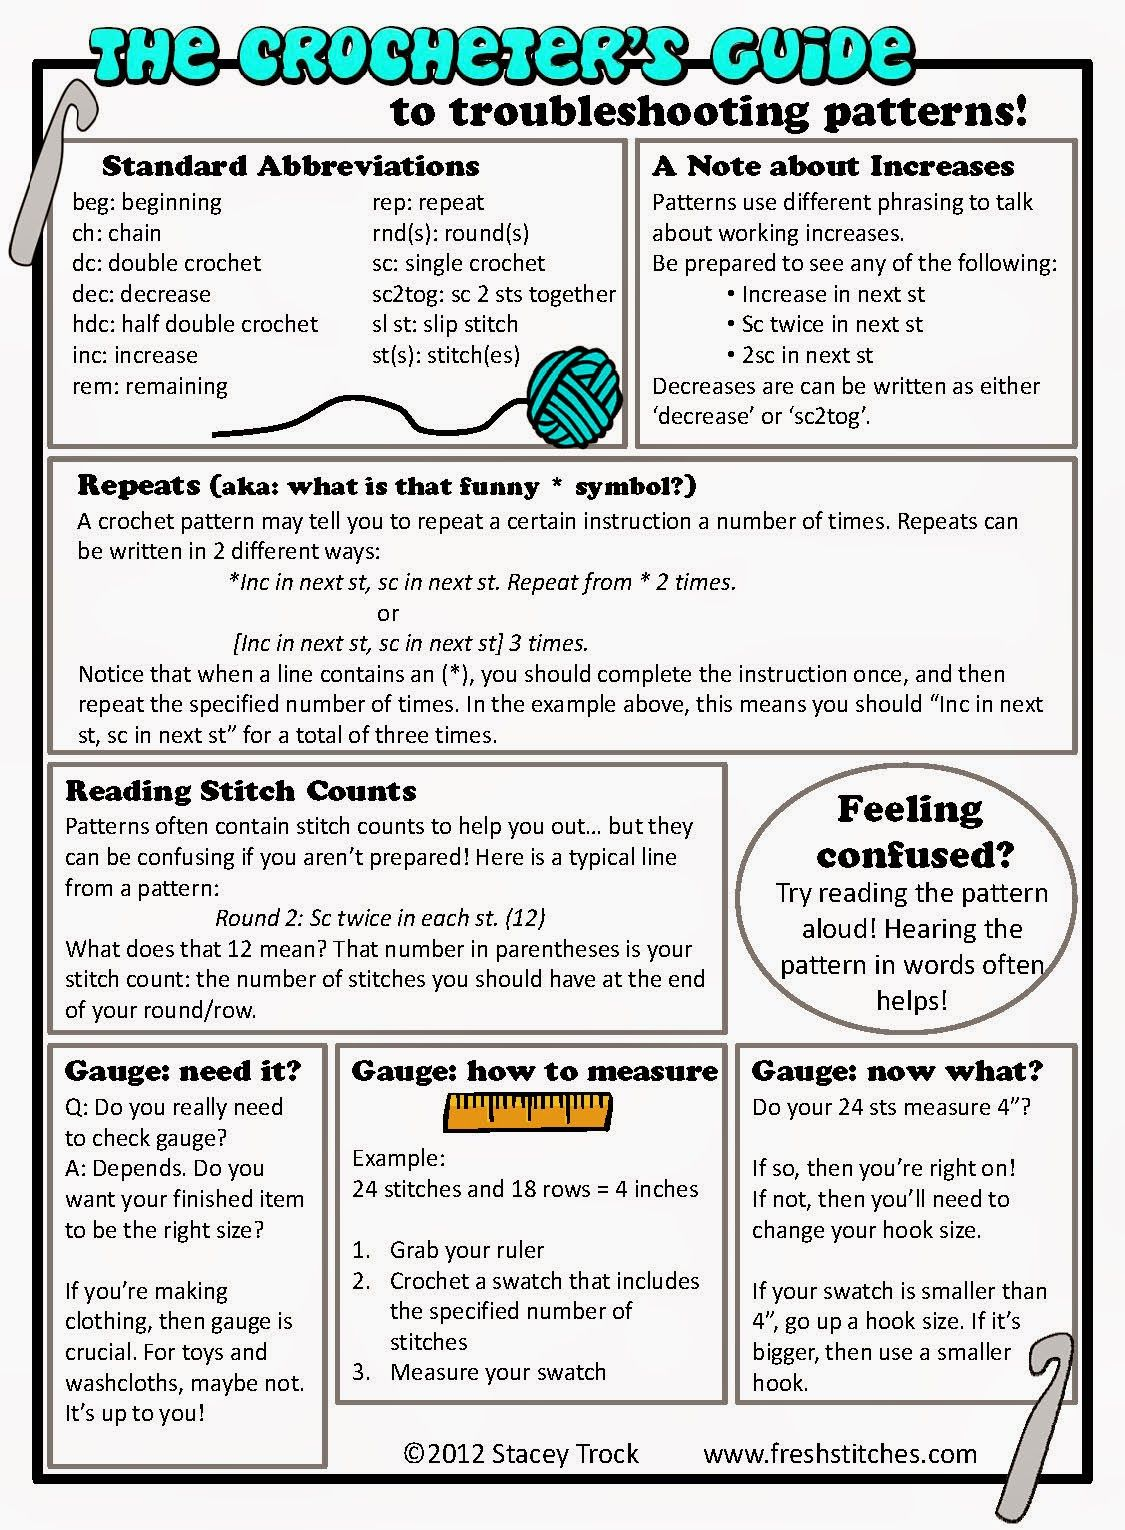 Cheat Sheets For The Crocheter